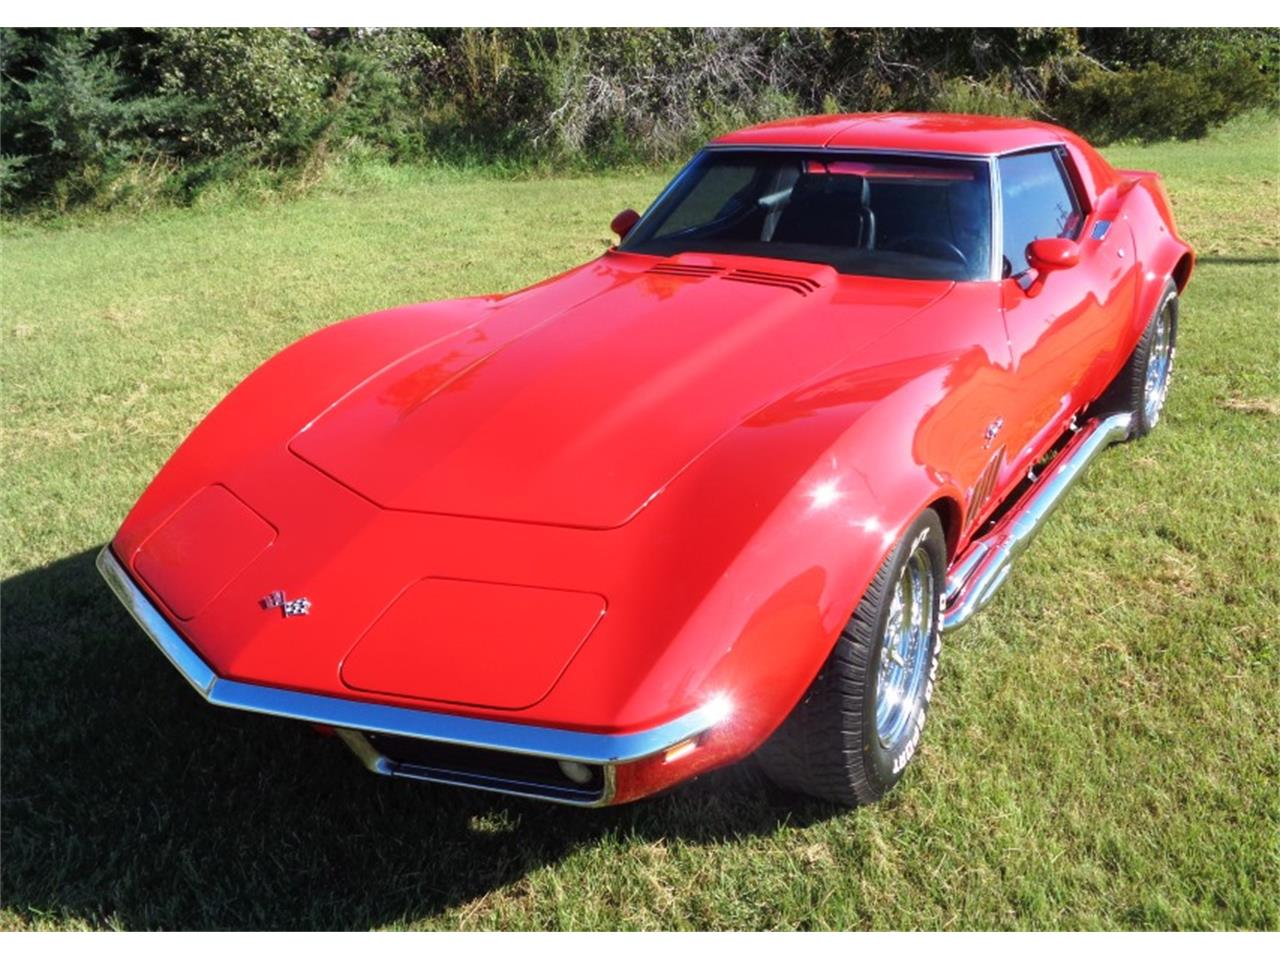 Large Picture of '69 Corvette located in Great Bend Kansas Auction Vehicle Offered by F & E Collector Auto Auctions - QV4G